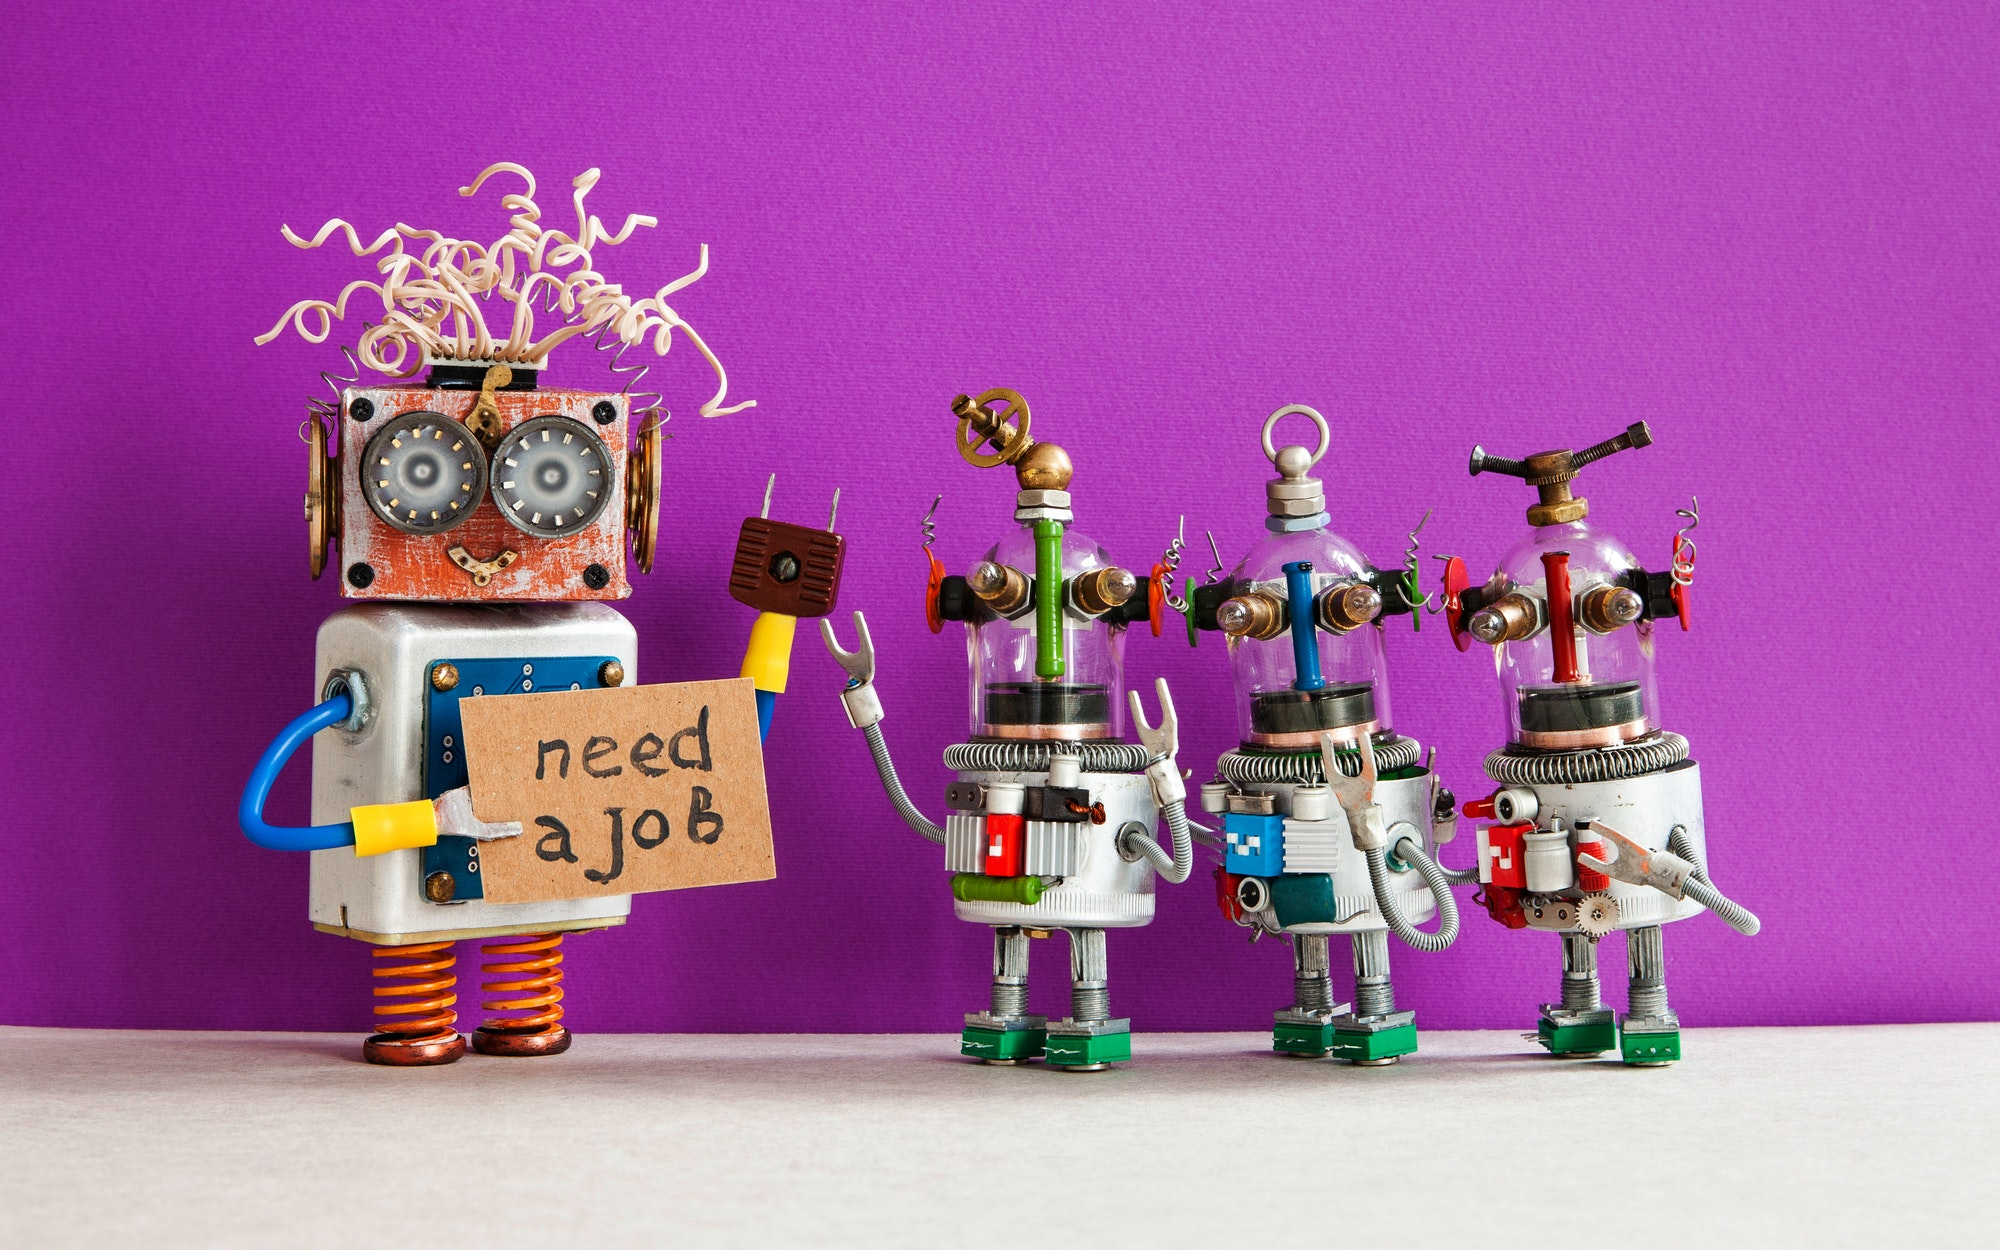 Job search concept. Robots looking for a job. Smiley unemployed robotic character with friends